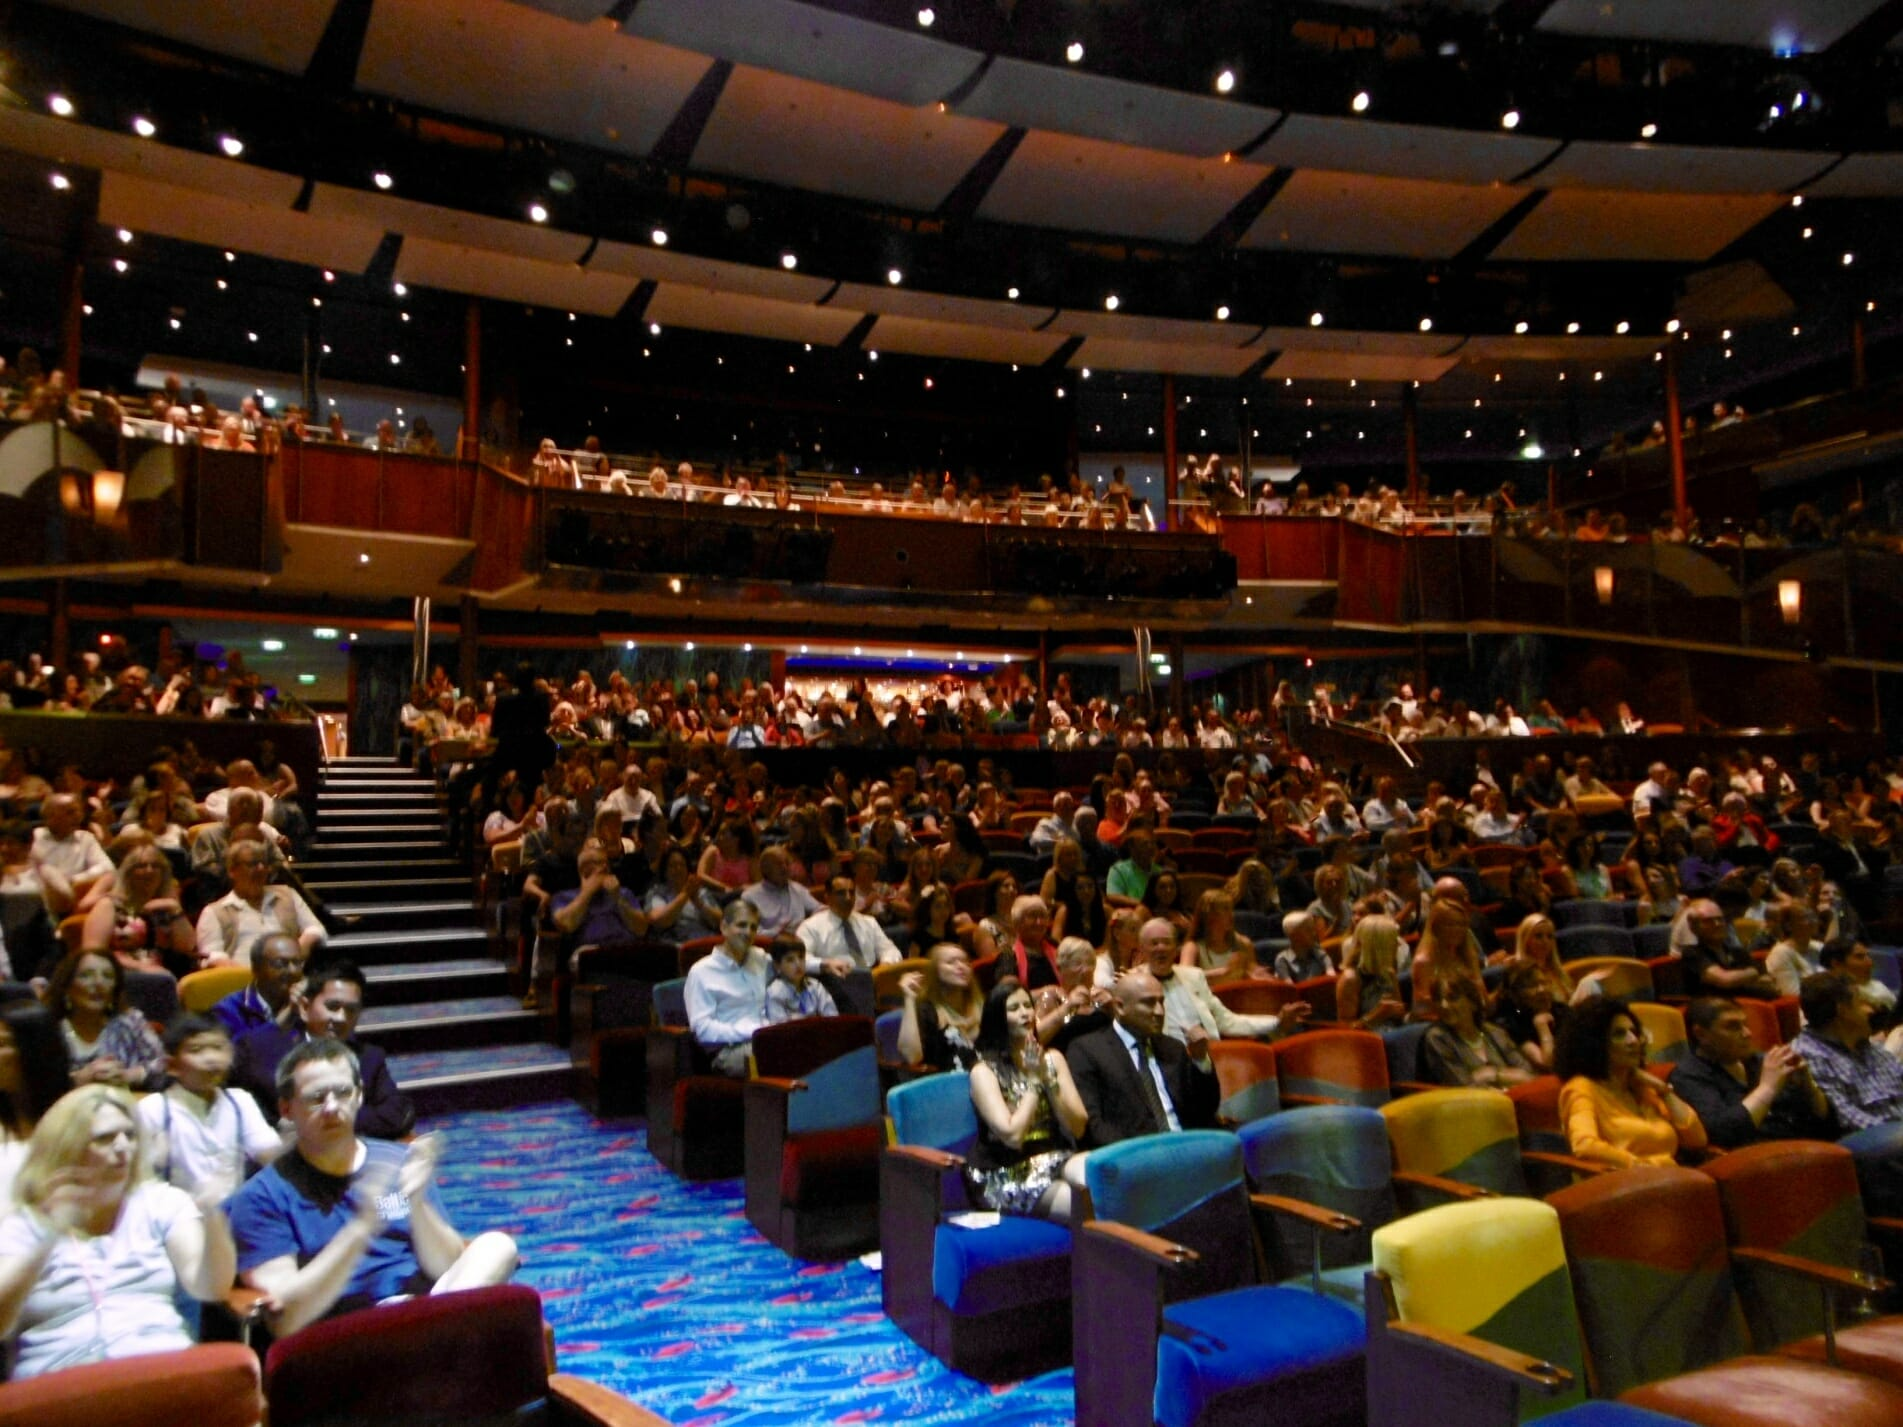 Audience at coral theatre, coral theatre, jewel of the seas, 60s tribute band, 60s tribute show,